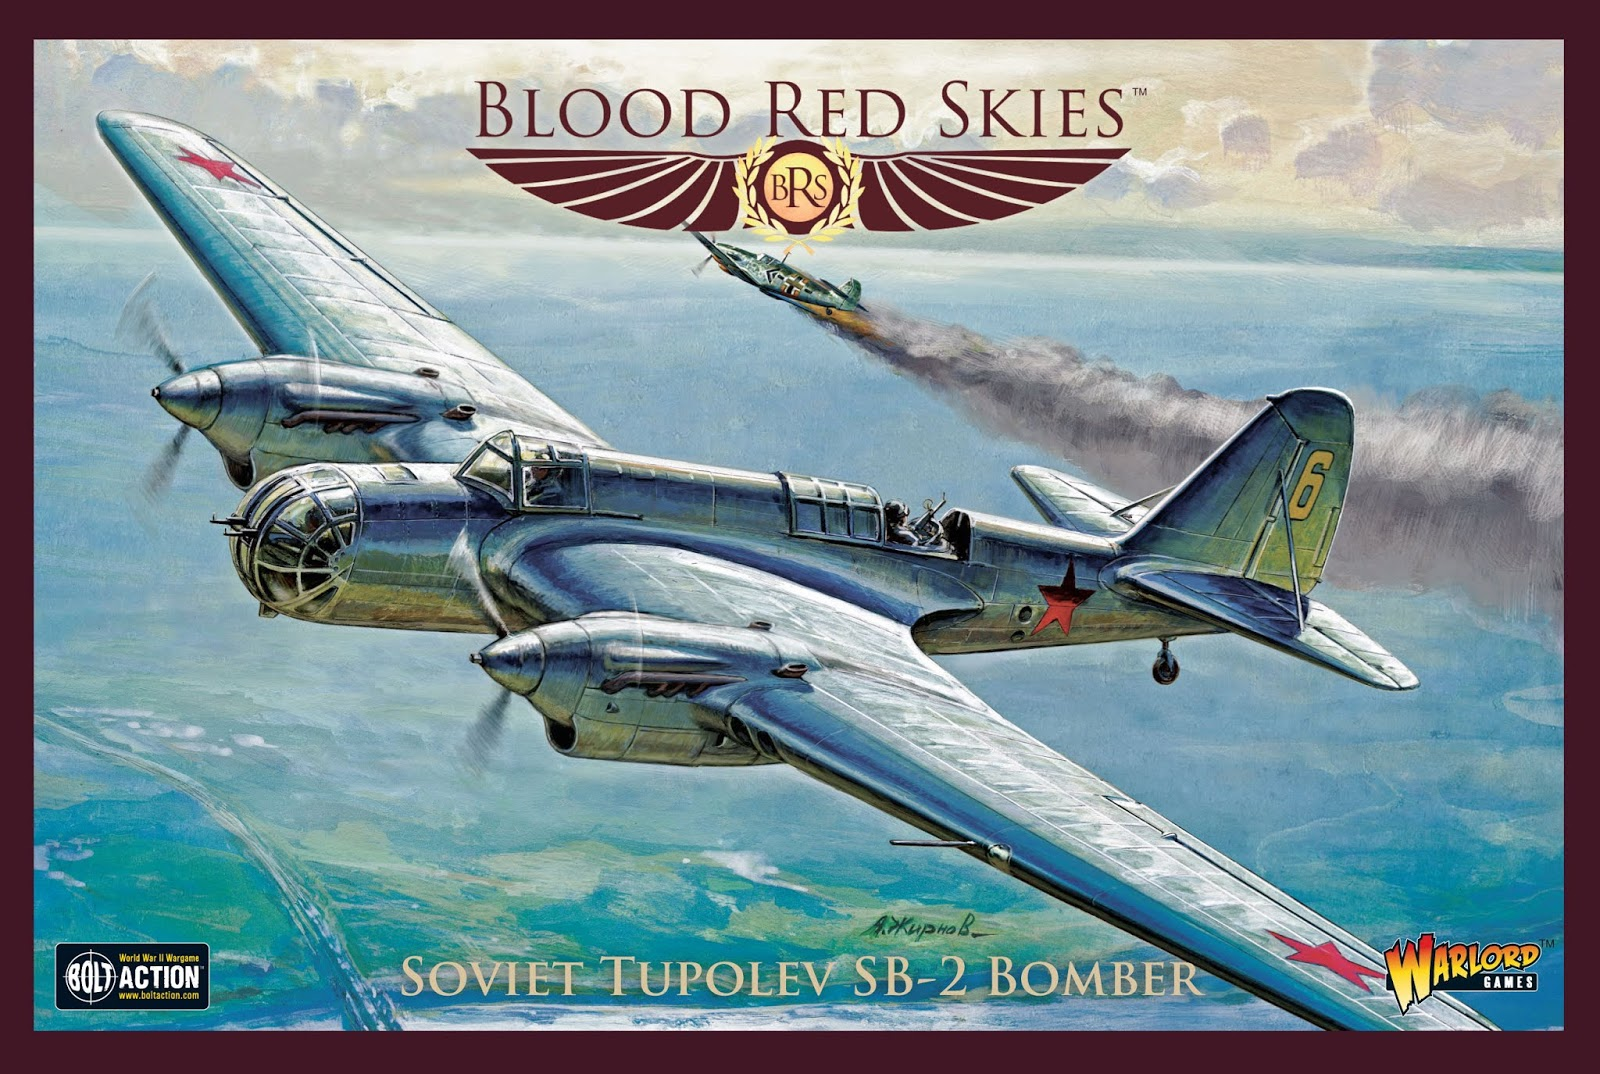 Soviet Tupolev SB2 Bomber - Blood Red Skies